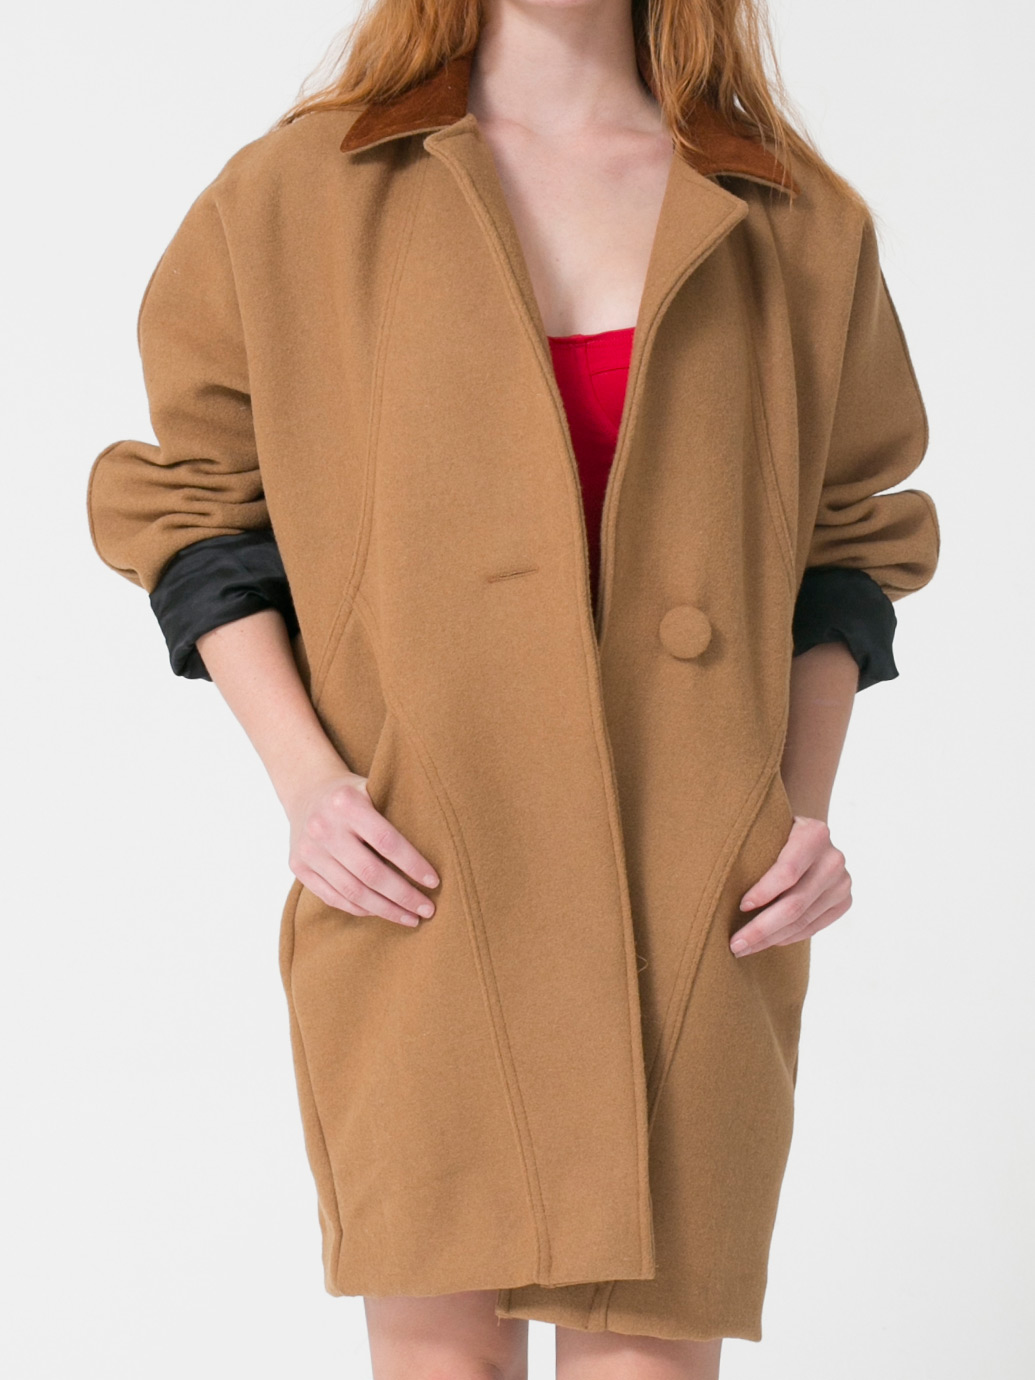 over sized coat american apparel